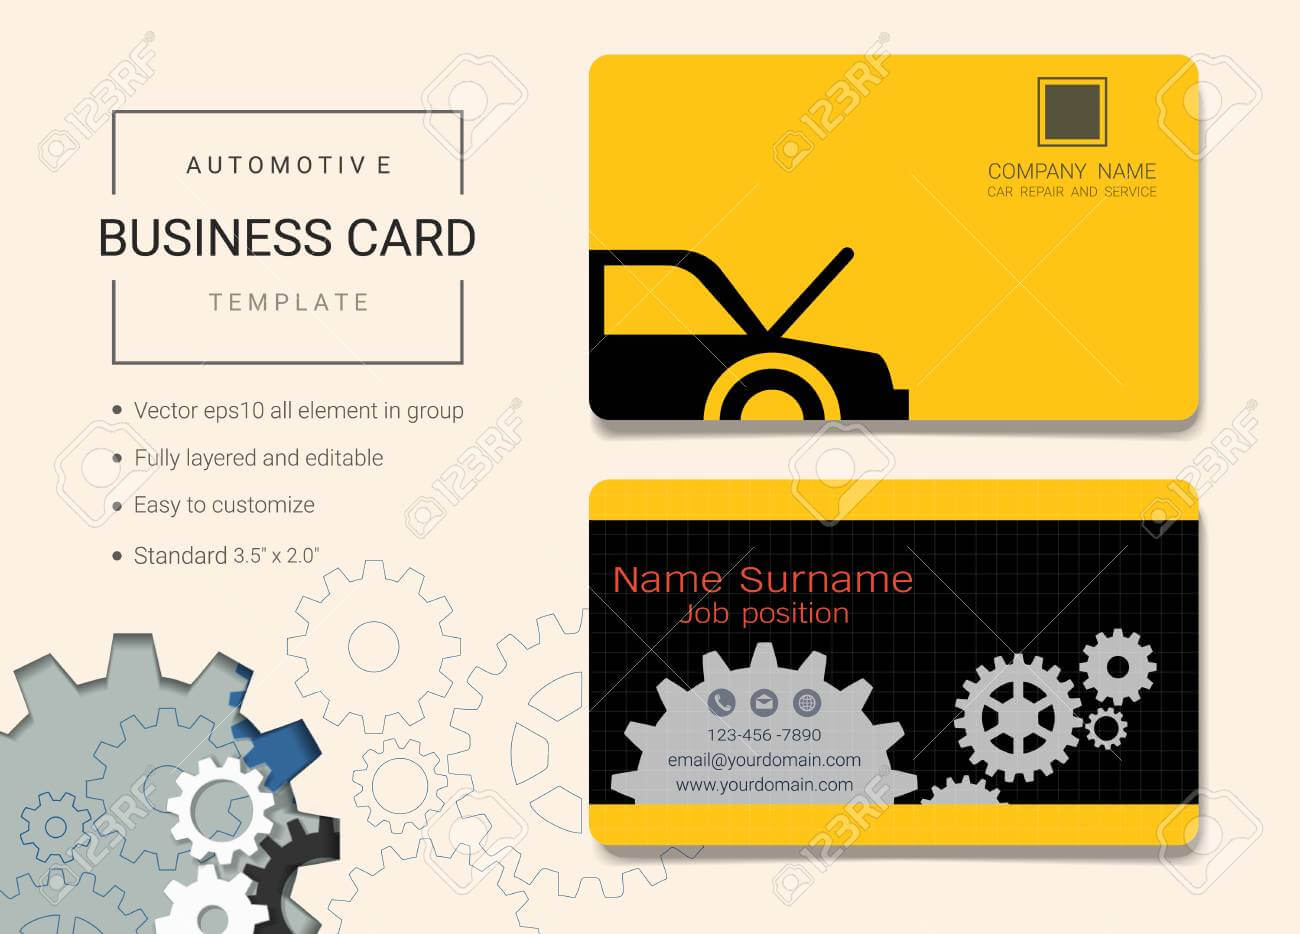 Automotive Business Card Or Name Card Template. Simple Style.. With Regard To Automotive Business Card Templates